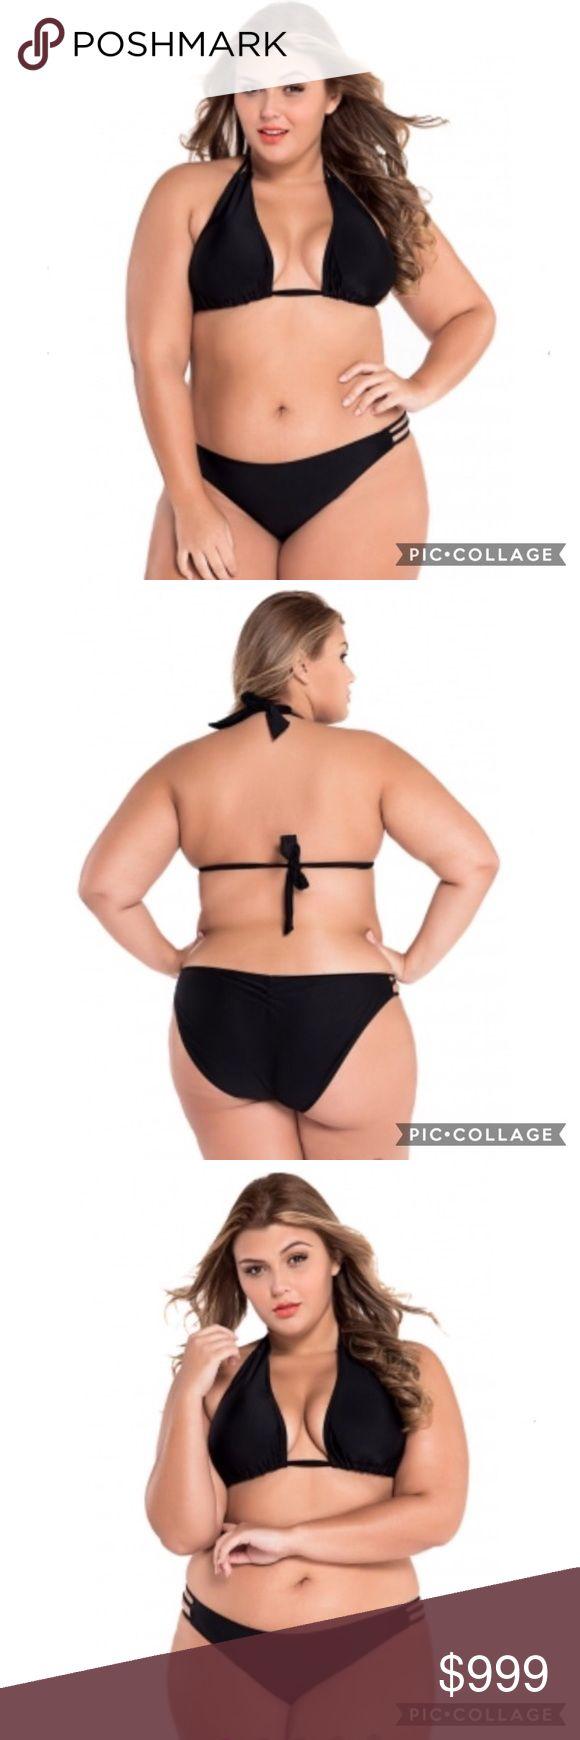 ✨JUST IN✨ Plus size sexy bikini top and bottom BRAND NEW Plus Size Sexy black Bikini top and bottom! Halter style top! Has open cut strips on the sides of the bottoms! Very Sexy!  Swim Bikinis